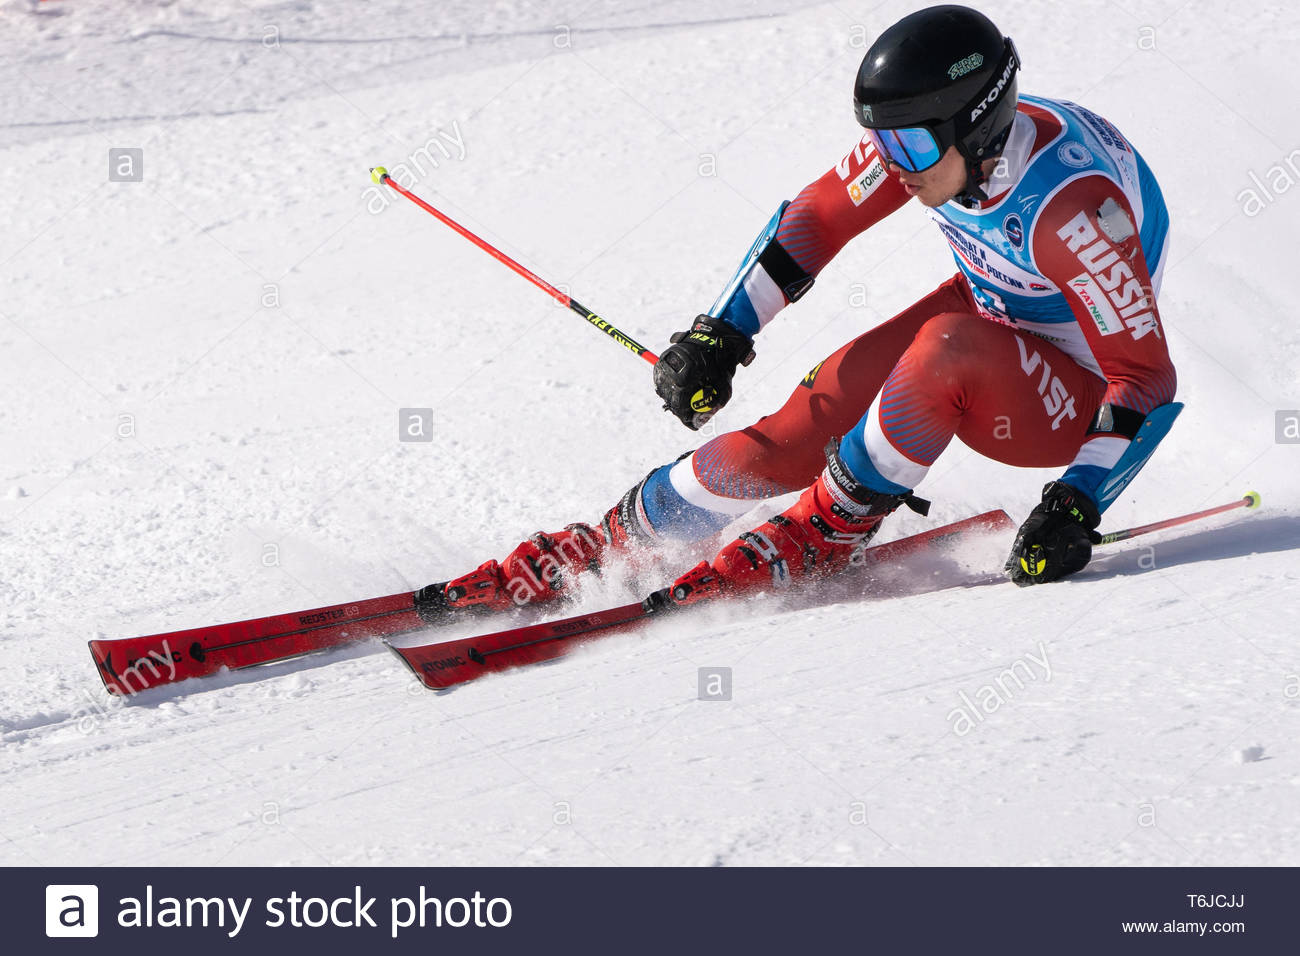 KAMCHATKA PENINSULA, RUSSIA - APR 1, 2019: Russian Alpine Skiing Cup, International Ski Federation (FIS) Championship, giant slalom. Mount skier Mikha - Stock Image